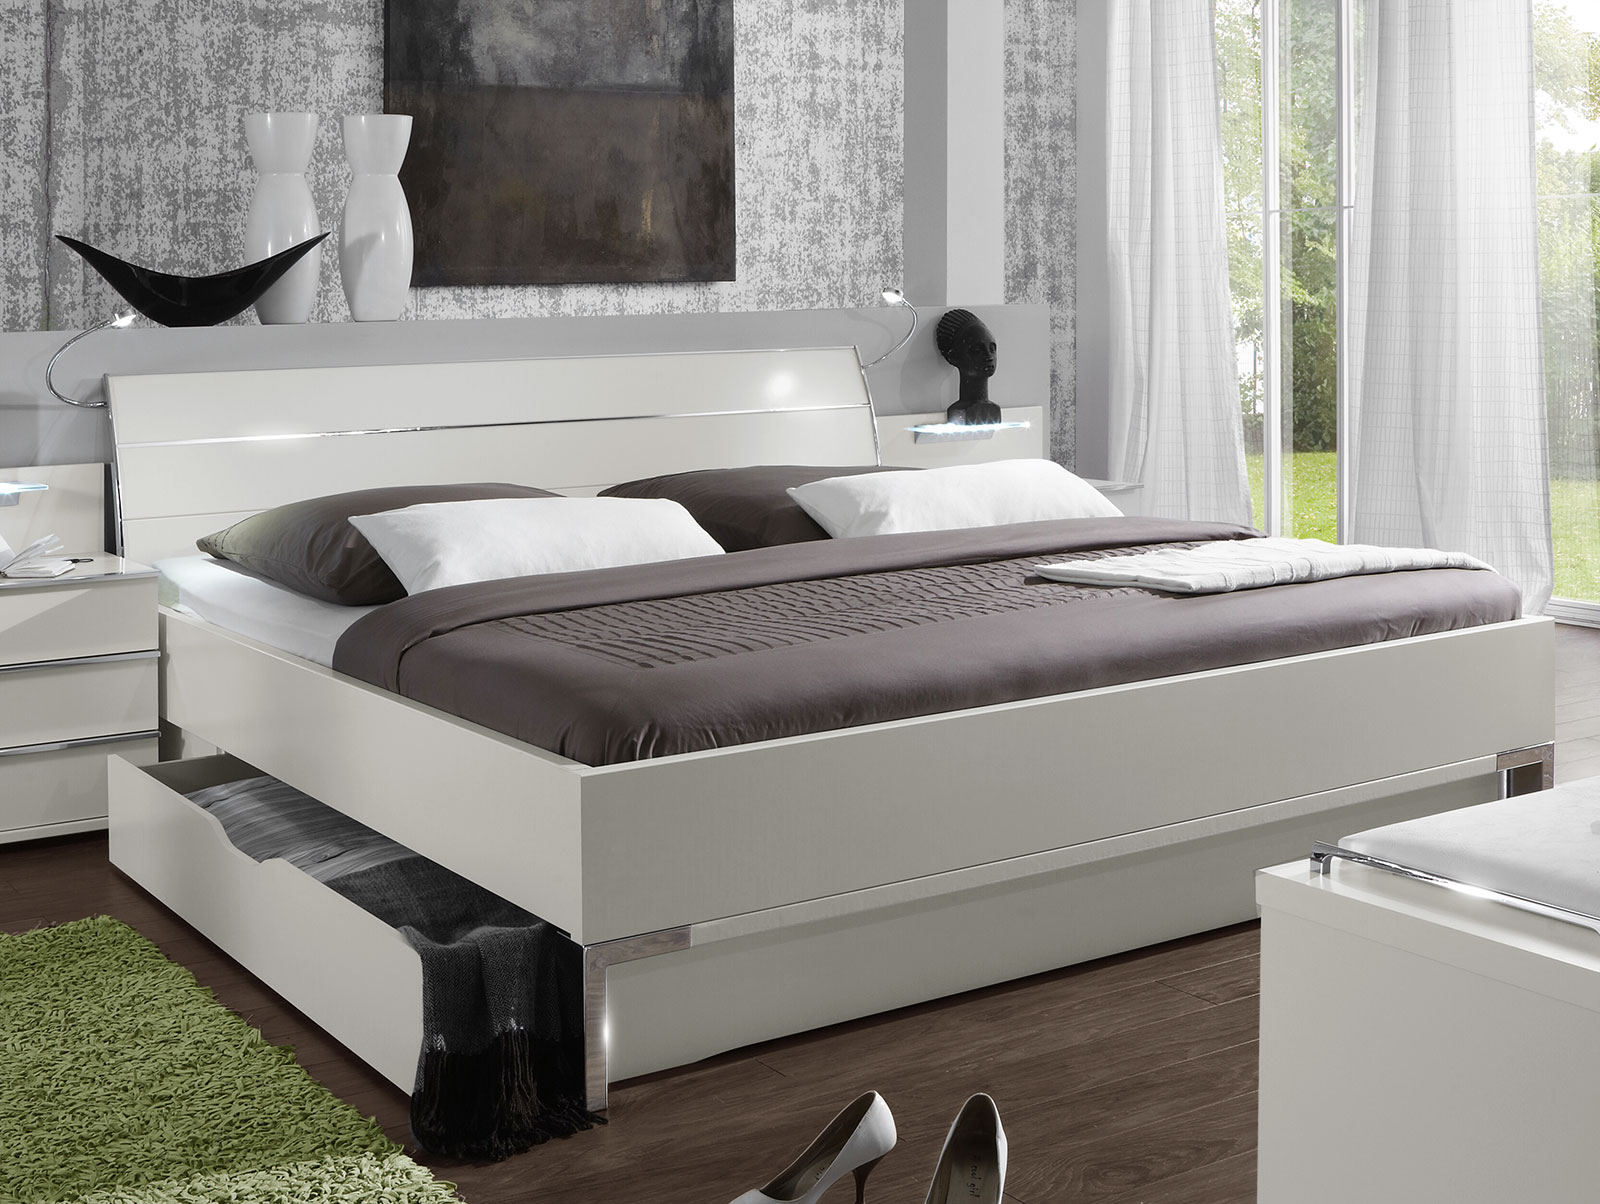 moderne betten lampe bett neu bett design modern living. Black Bedroom Furniture Sets. Home Design Ideas